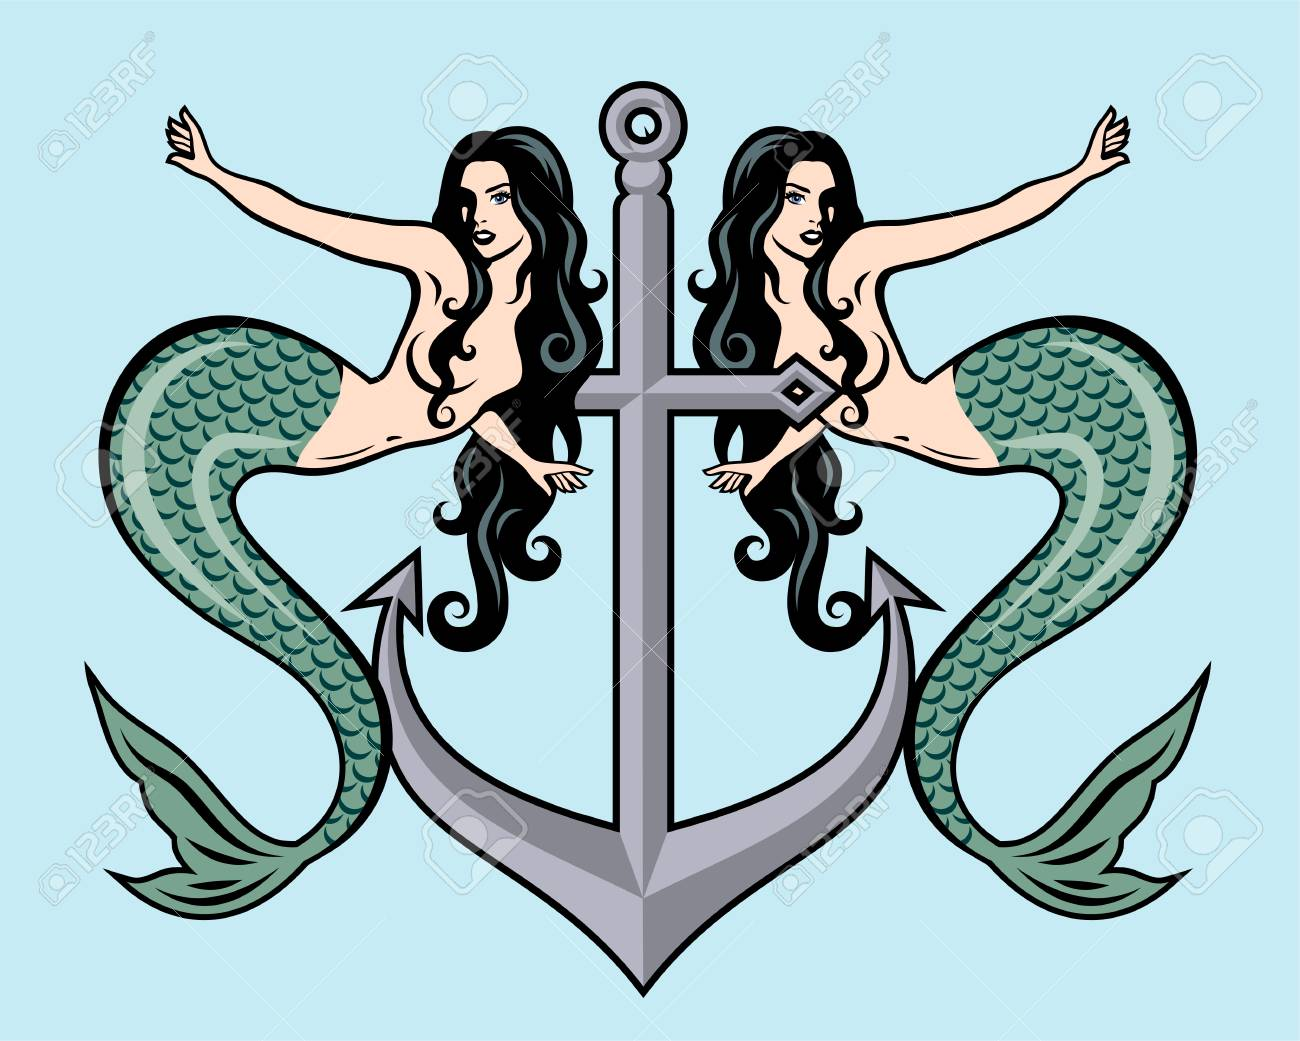 e3be8539e The image of a mermaid in the traditional style of Old school tattoo pin-up